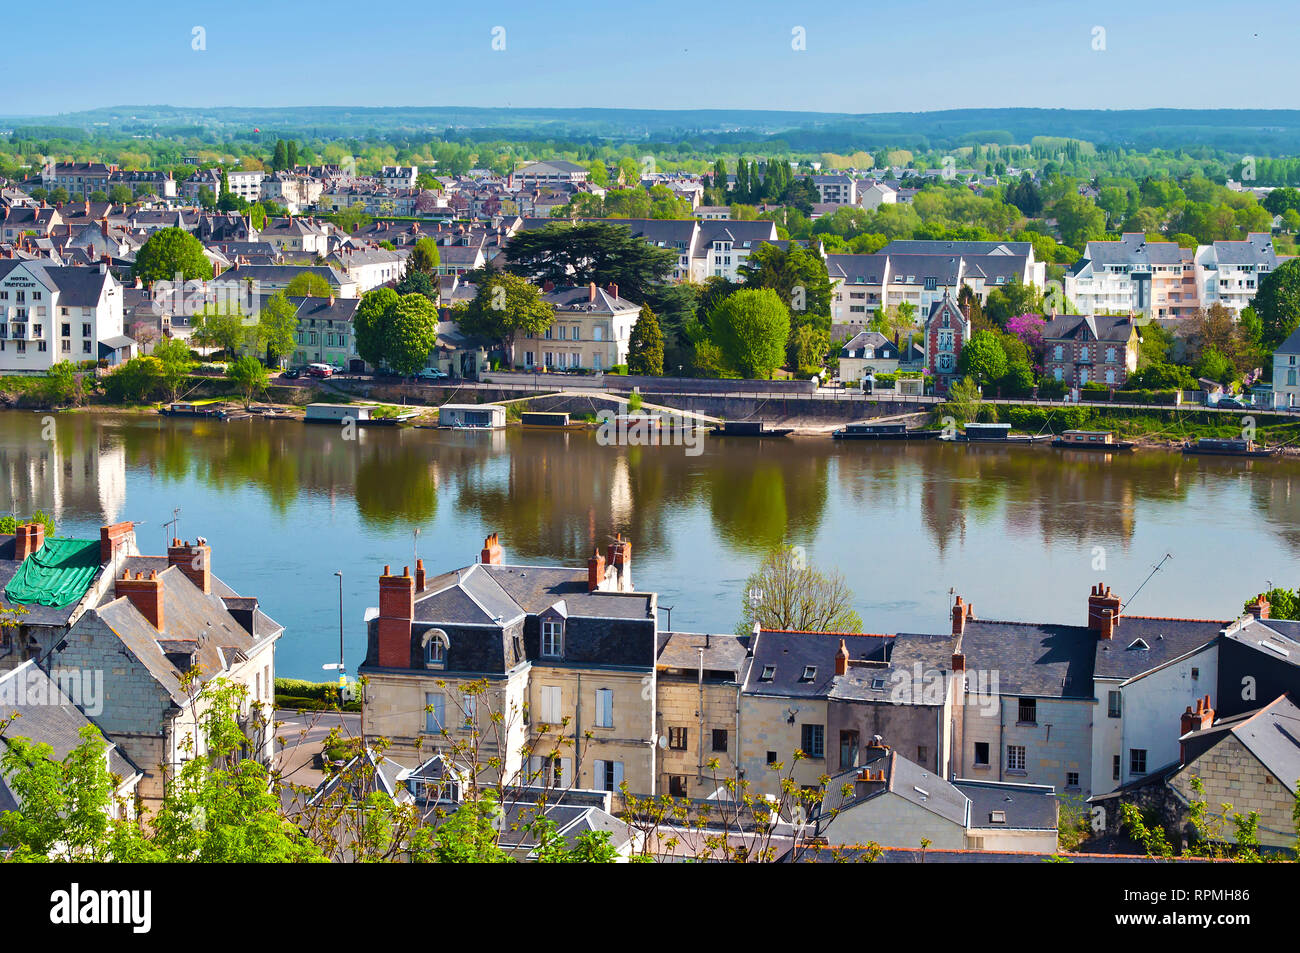 Breathtaking view on amazing small town Saumur, France. Many white and gray houses near a Loire river, lots of green trees and rooftops. Warm spring m Stock Photo